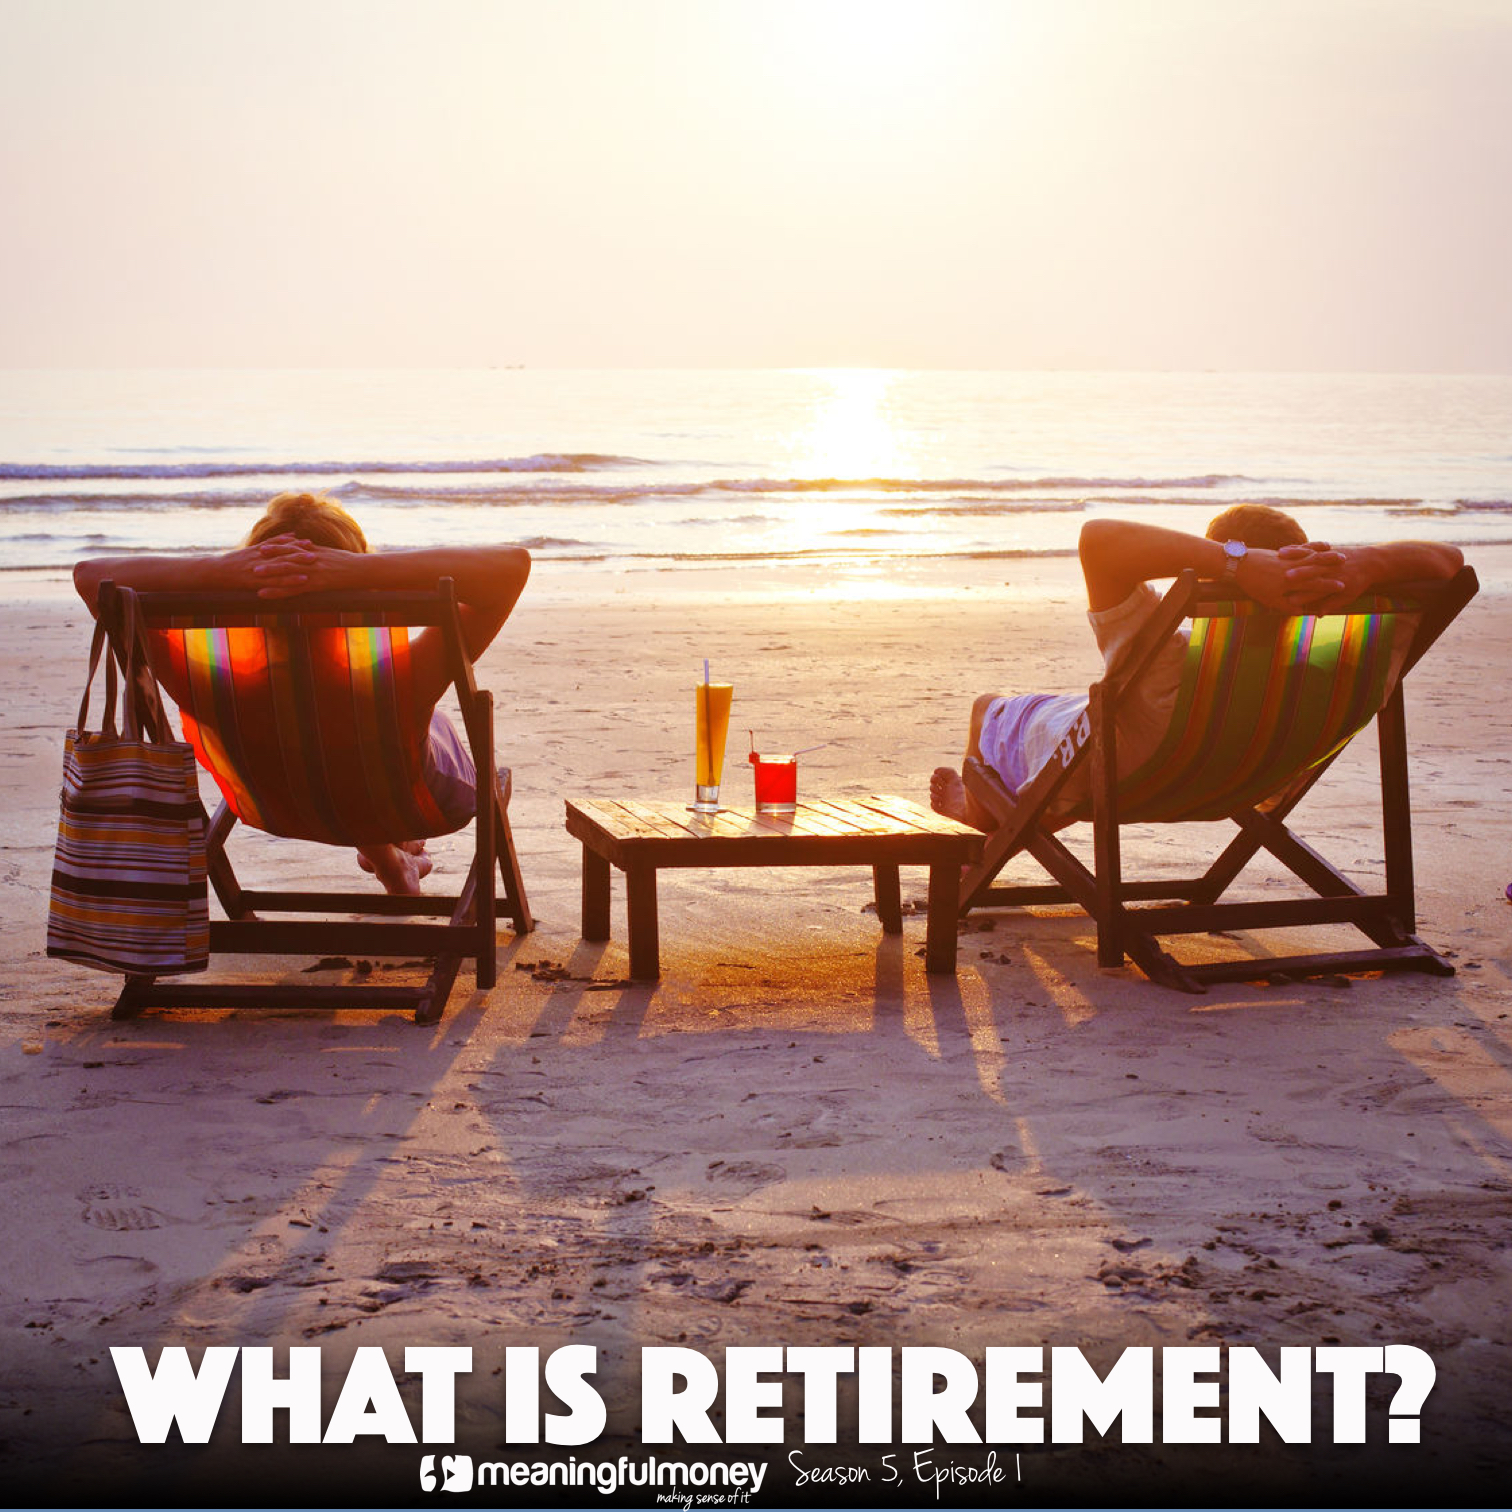 What is retirement?|What is retirement?